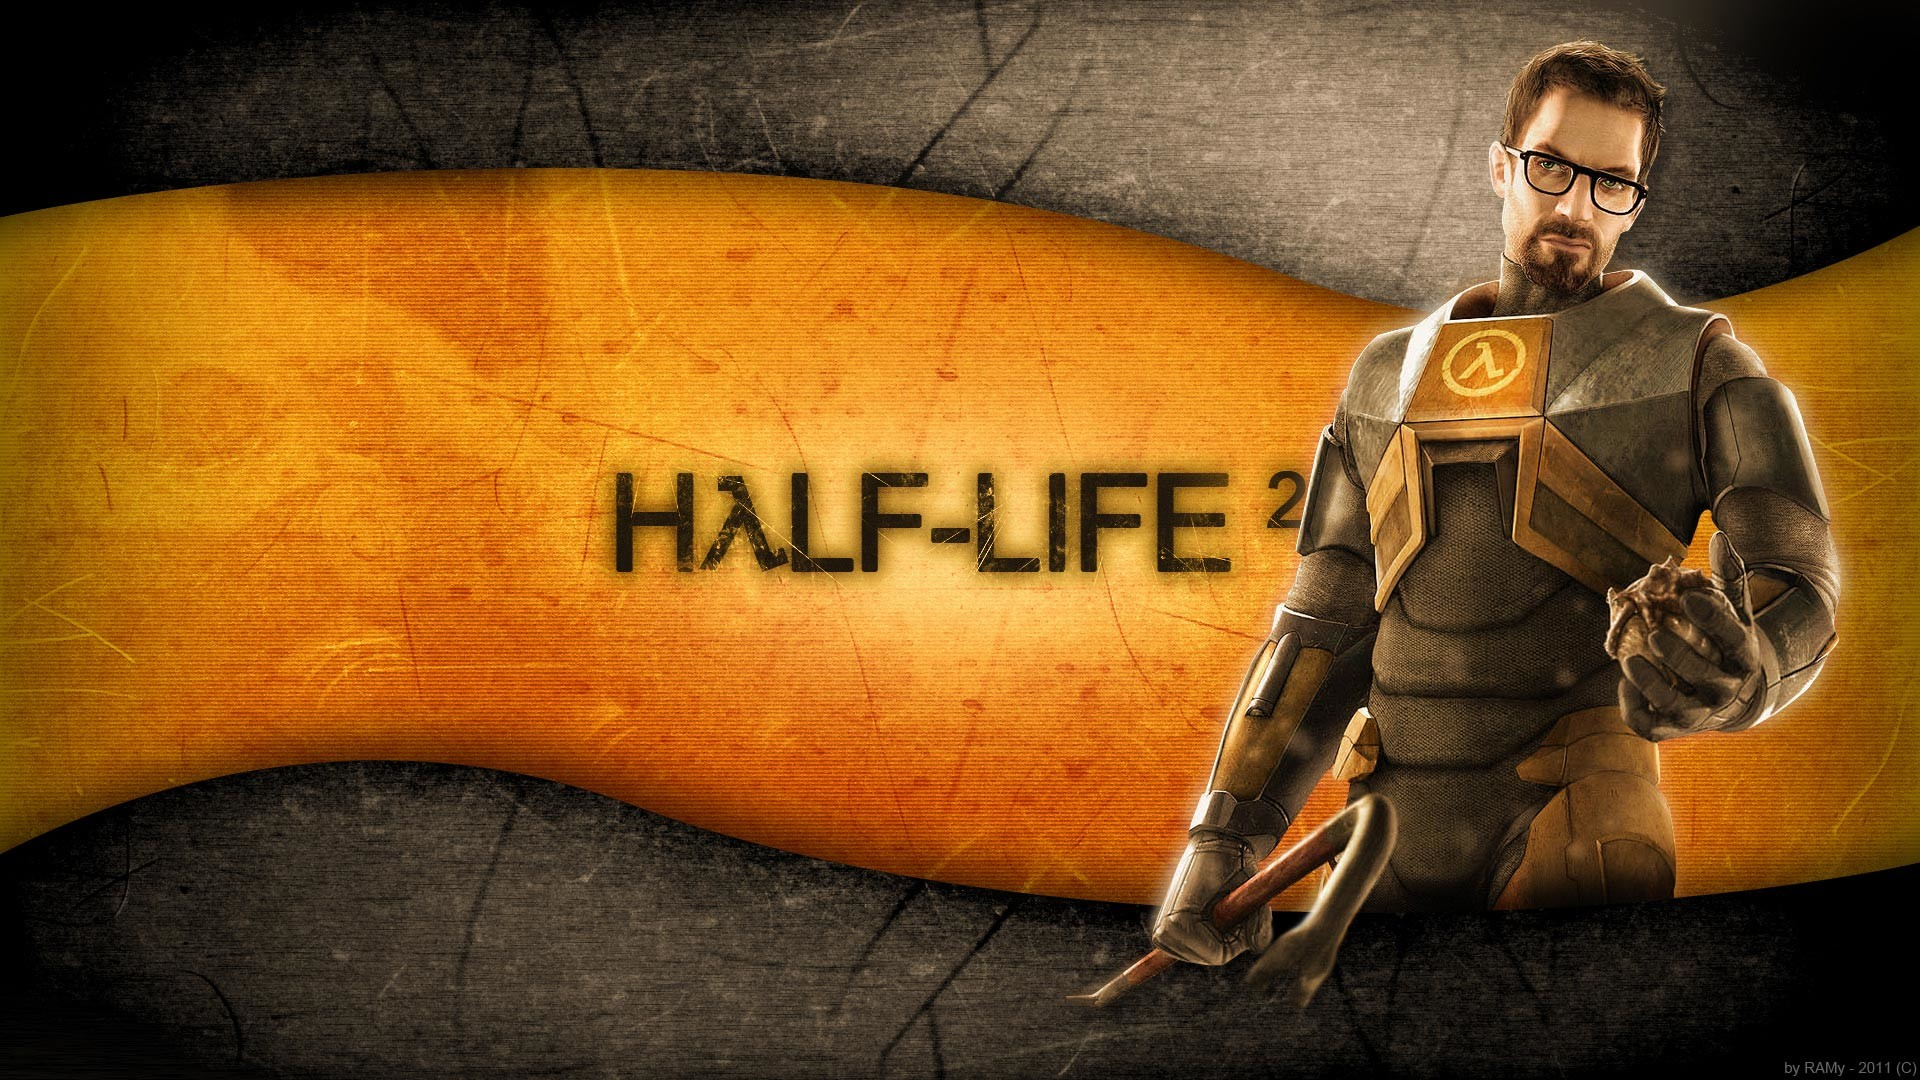 1920x1080 Half Life Game Wallpaper For Desktop